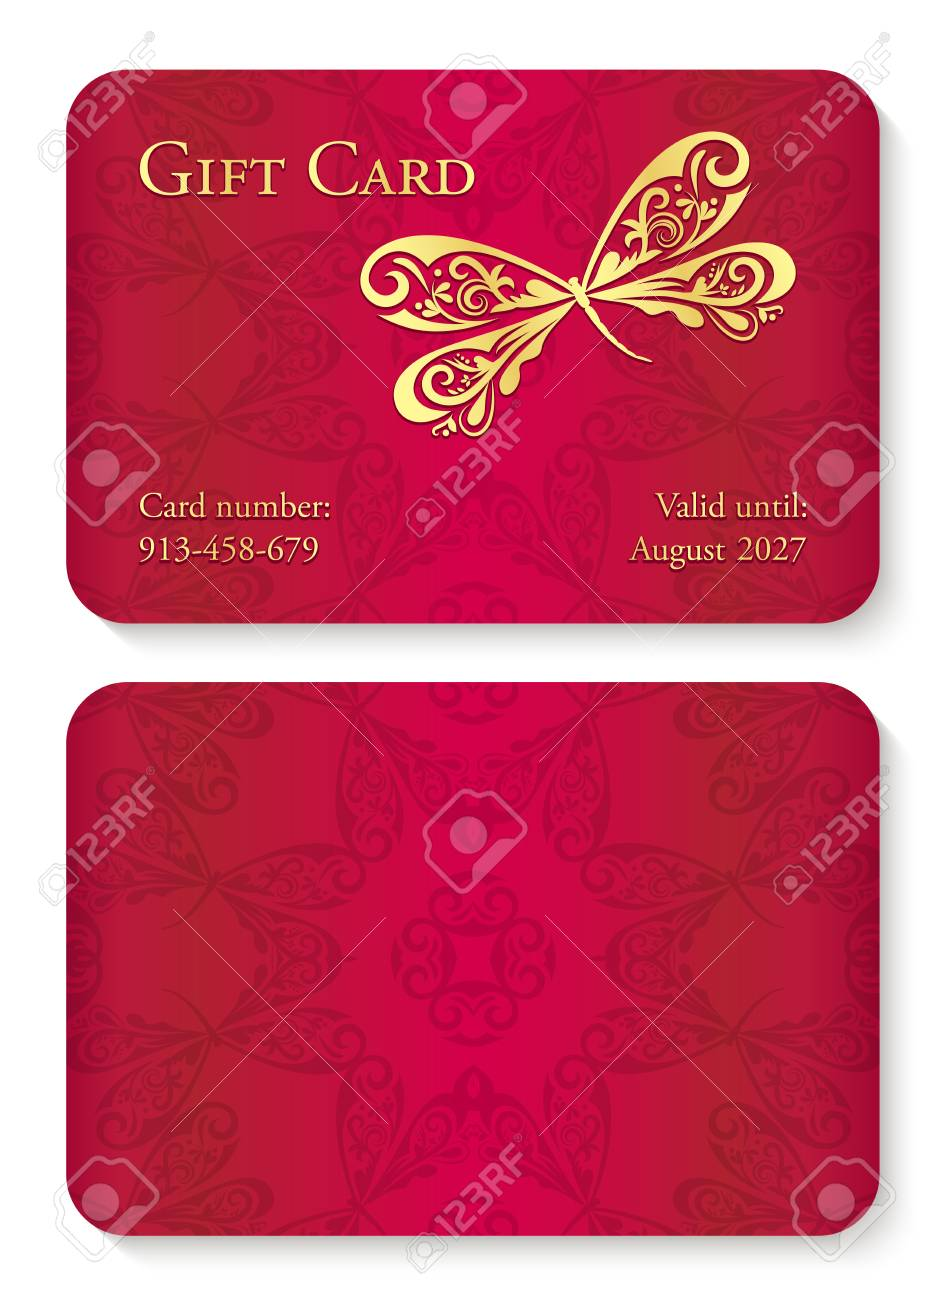 Luxury Red Gift Card With Dragonfly Ornament Front Side With